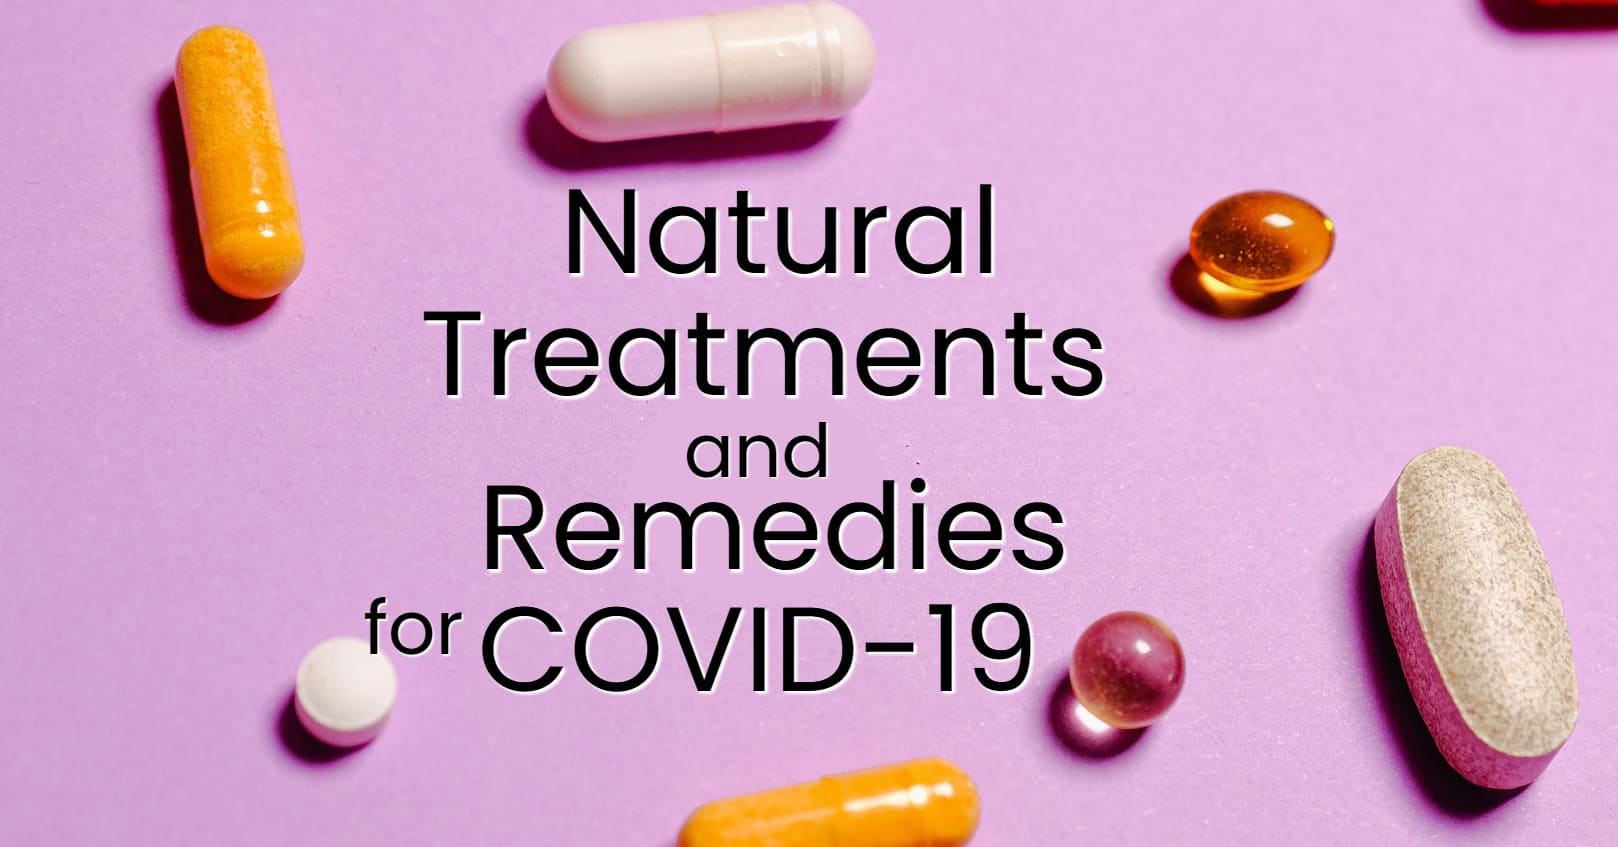 Natural treatments and remedies for COVID-19